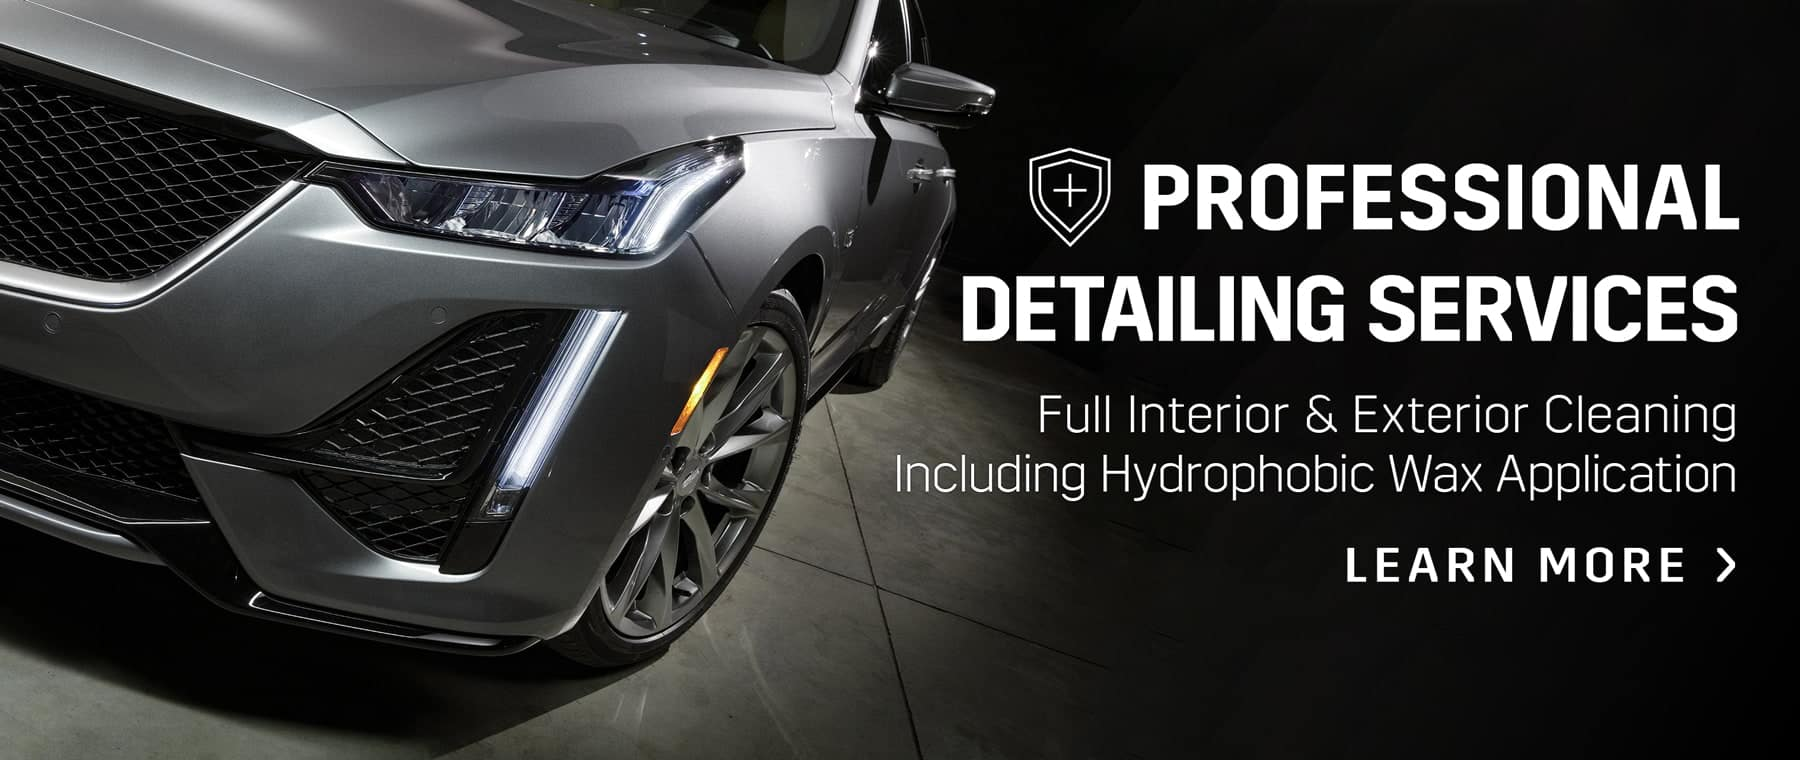 Professional Detailing Services Kingston